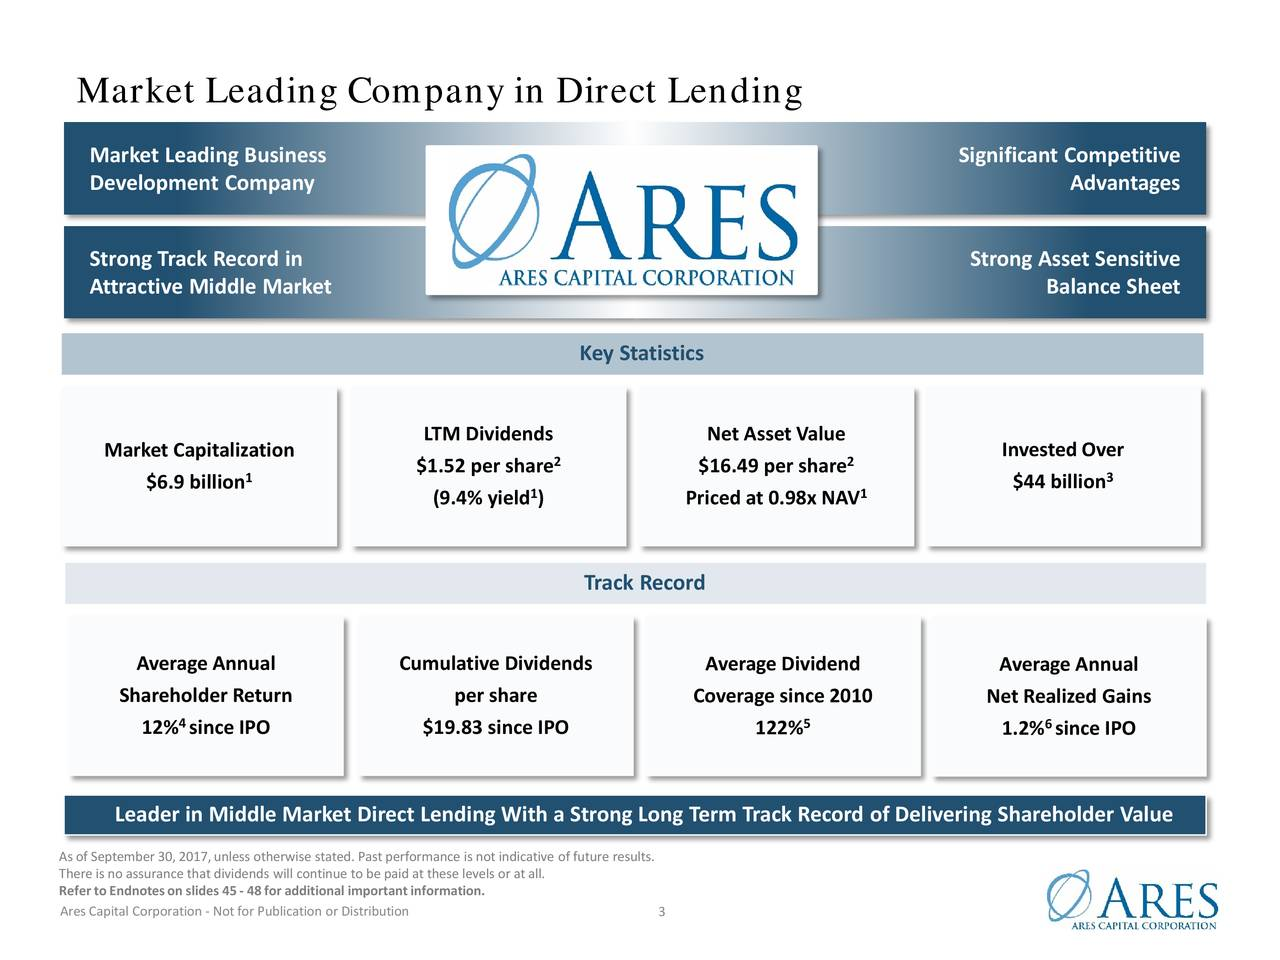 Market Leading Company in Direct Lending